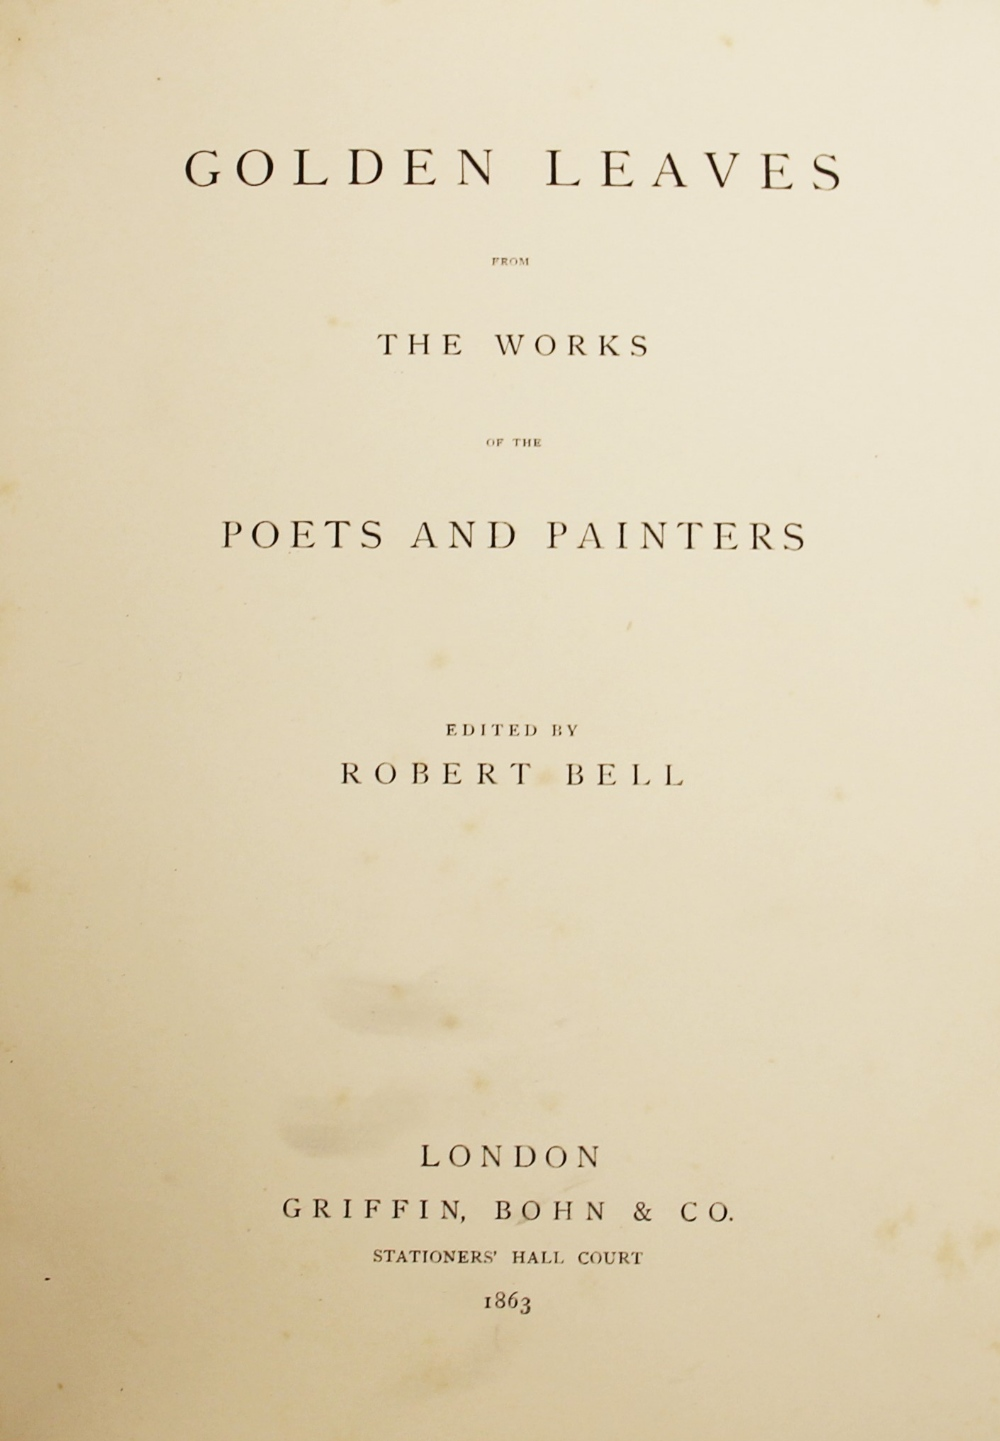 Bell (R), GOLDEN LEAVES FROM THE WORKS OF THE POETS AND PAINTERS, first edition, full leather, - Image 5 of 9